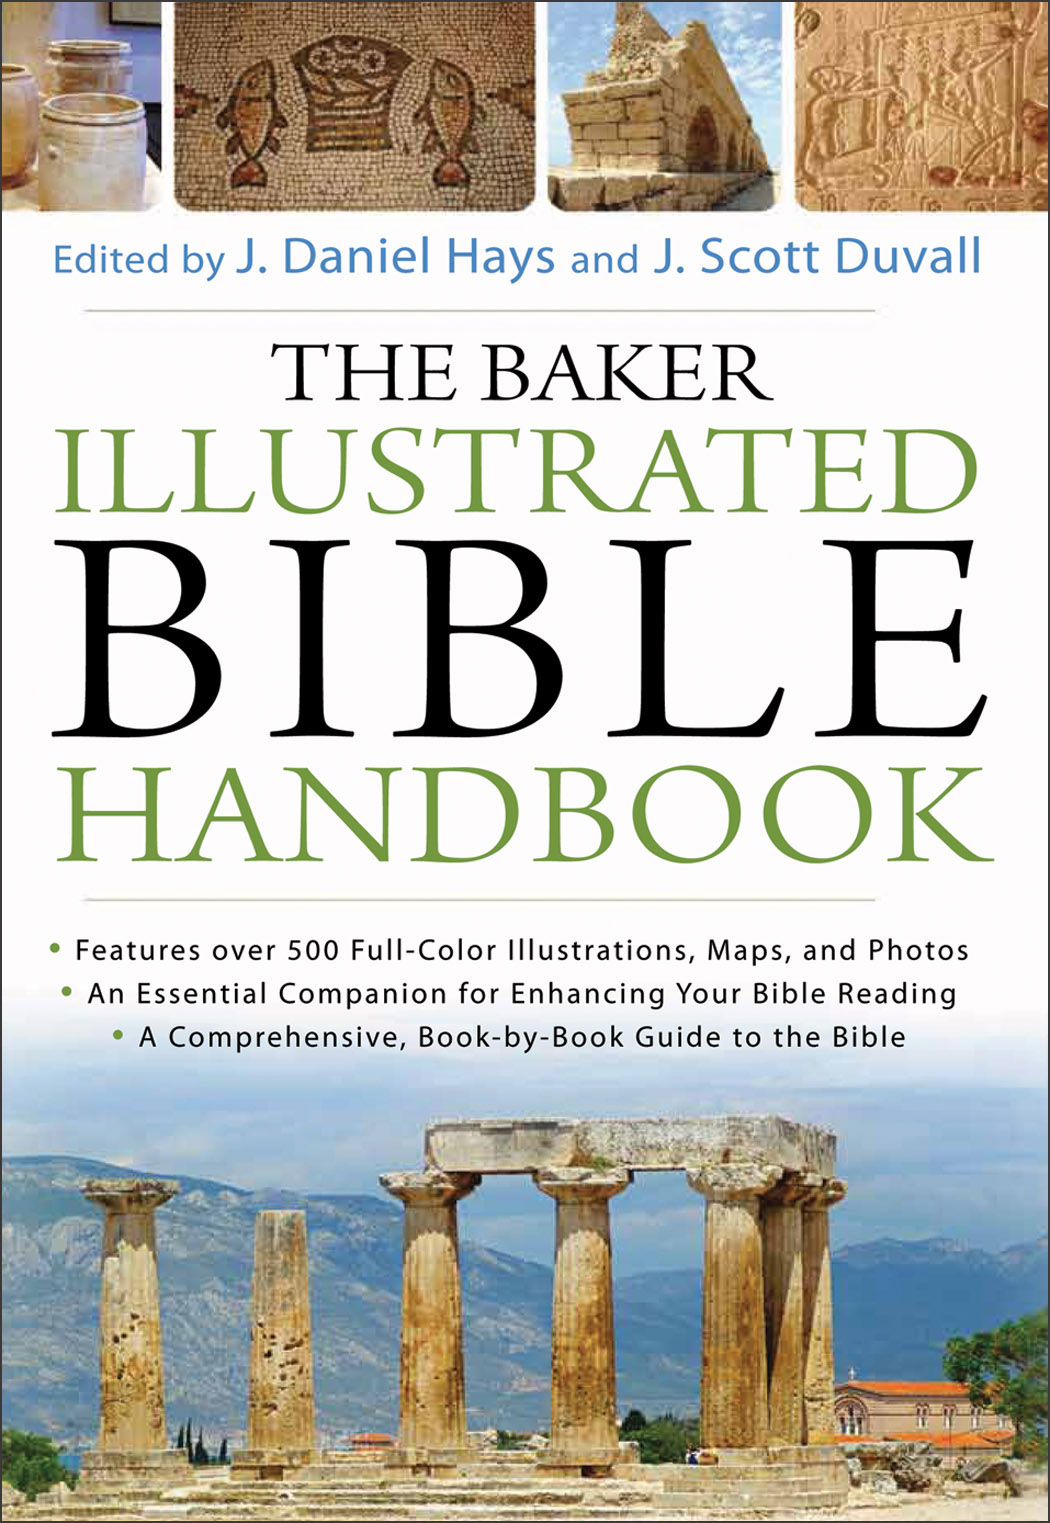 Hays duvall the baker illustrated bible handbook ritchie hays duvall the baker illustrated bible handbook ritchie christian media fandeluxe Gallery